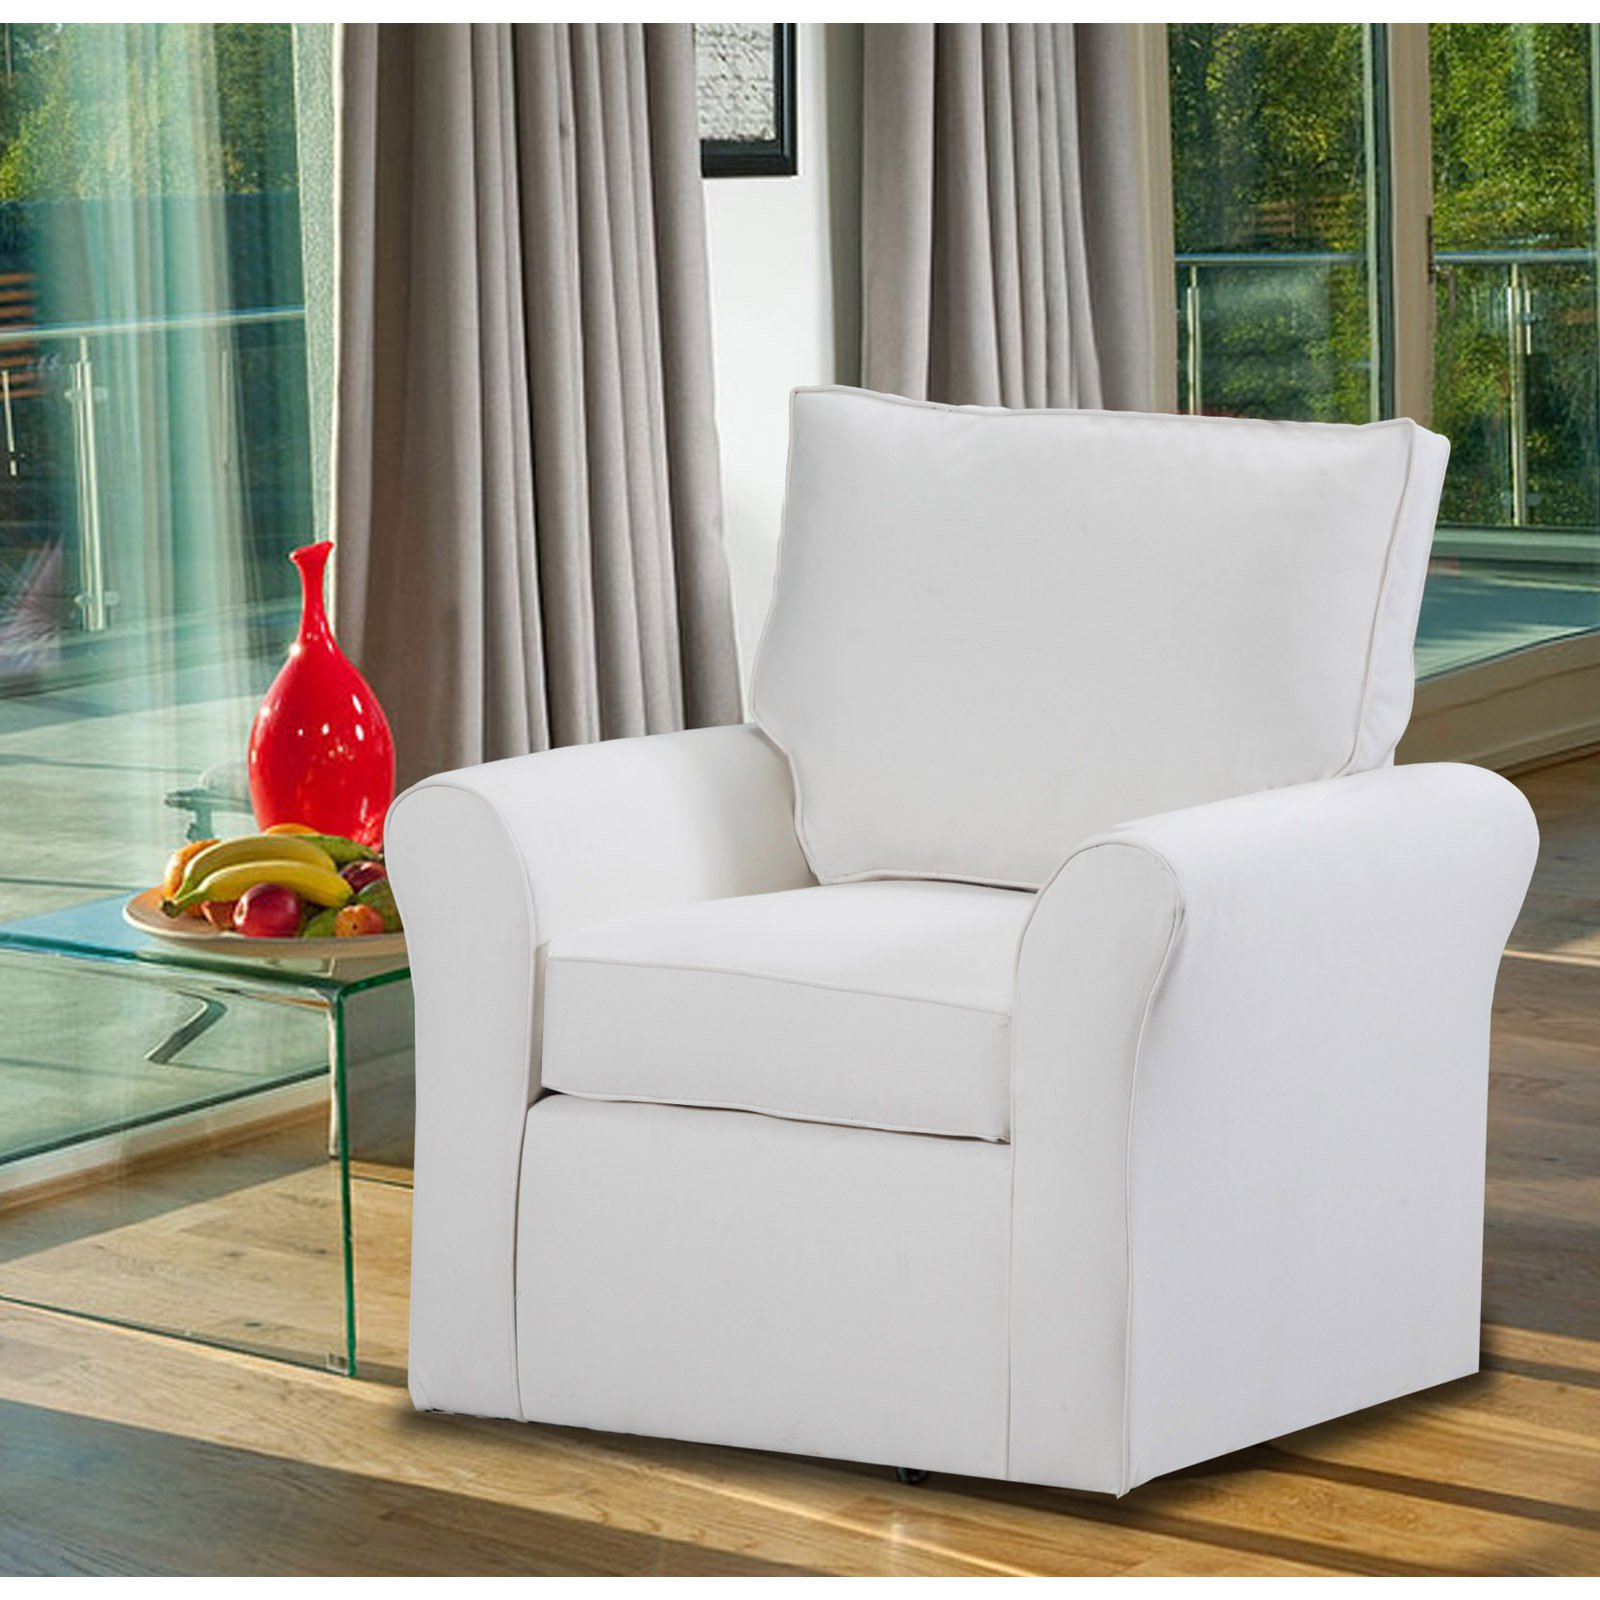 Carolina Accents Belle Meade Swivel Armchair by